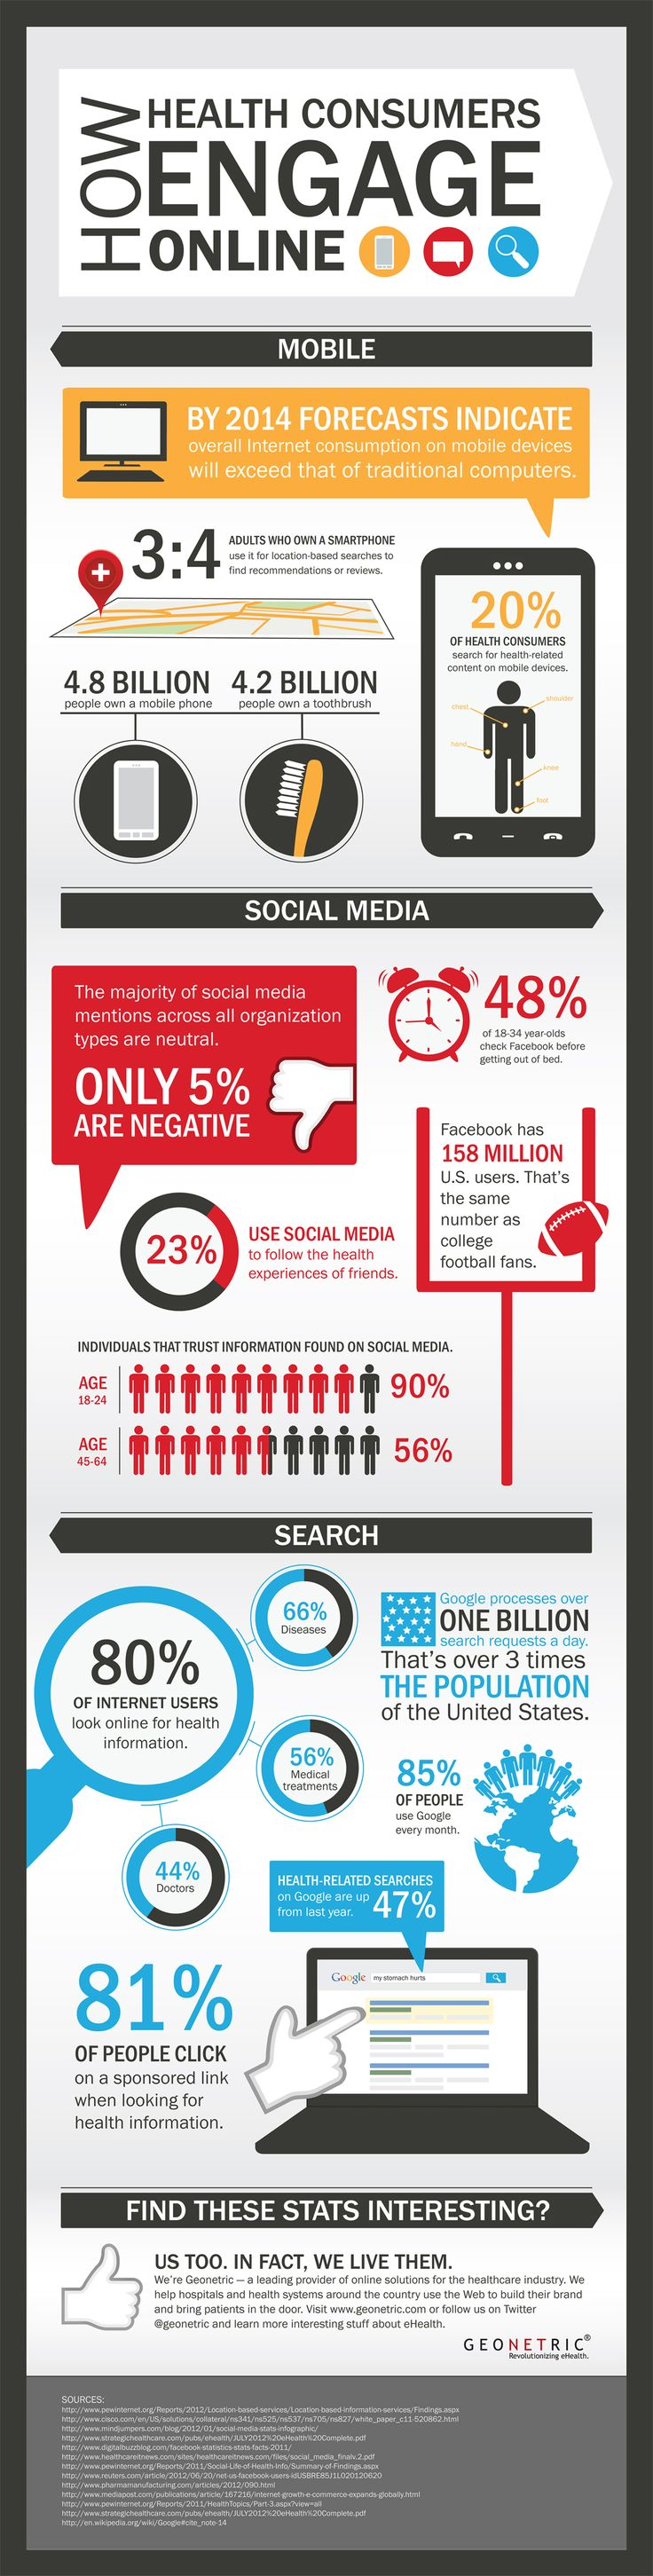 Social and mobile continue to converge in healthcare